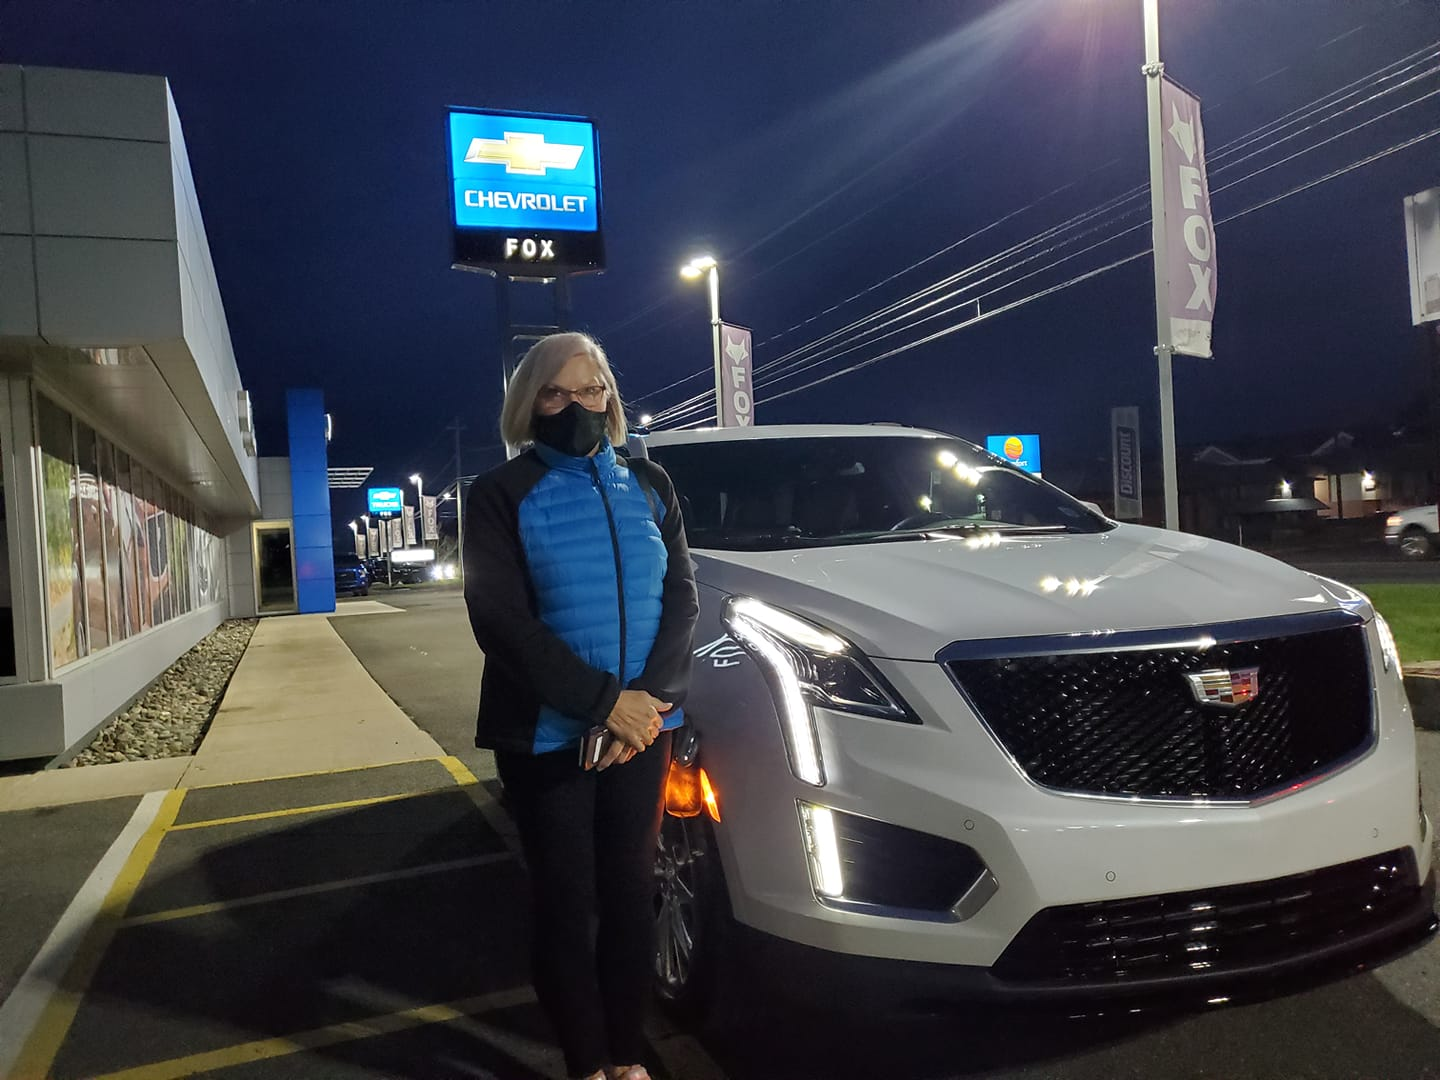 Fox Chevrolet Cadillac On Twitter We At Fox Chevrolet Cadillac Would Like To Congratulate Charlene On Driving Home A Beautiful New Cadillac Xt5